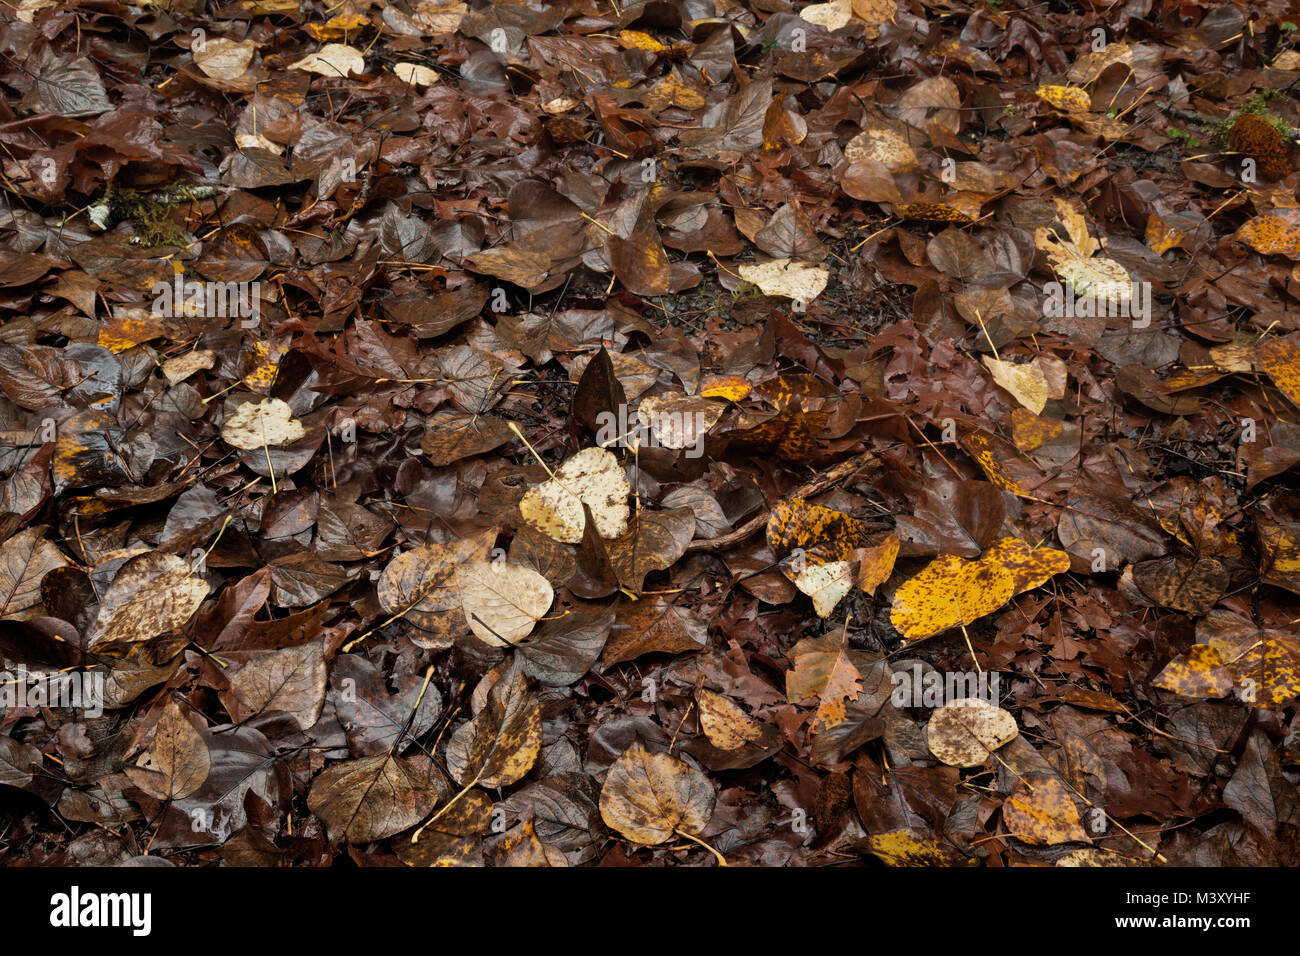 WA13335-00...WASHINGTON - Old leaves on the ground in Graves Creek Campground in Olympic National Park. - Stock Image